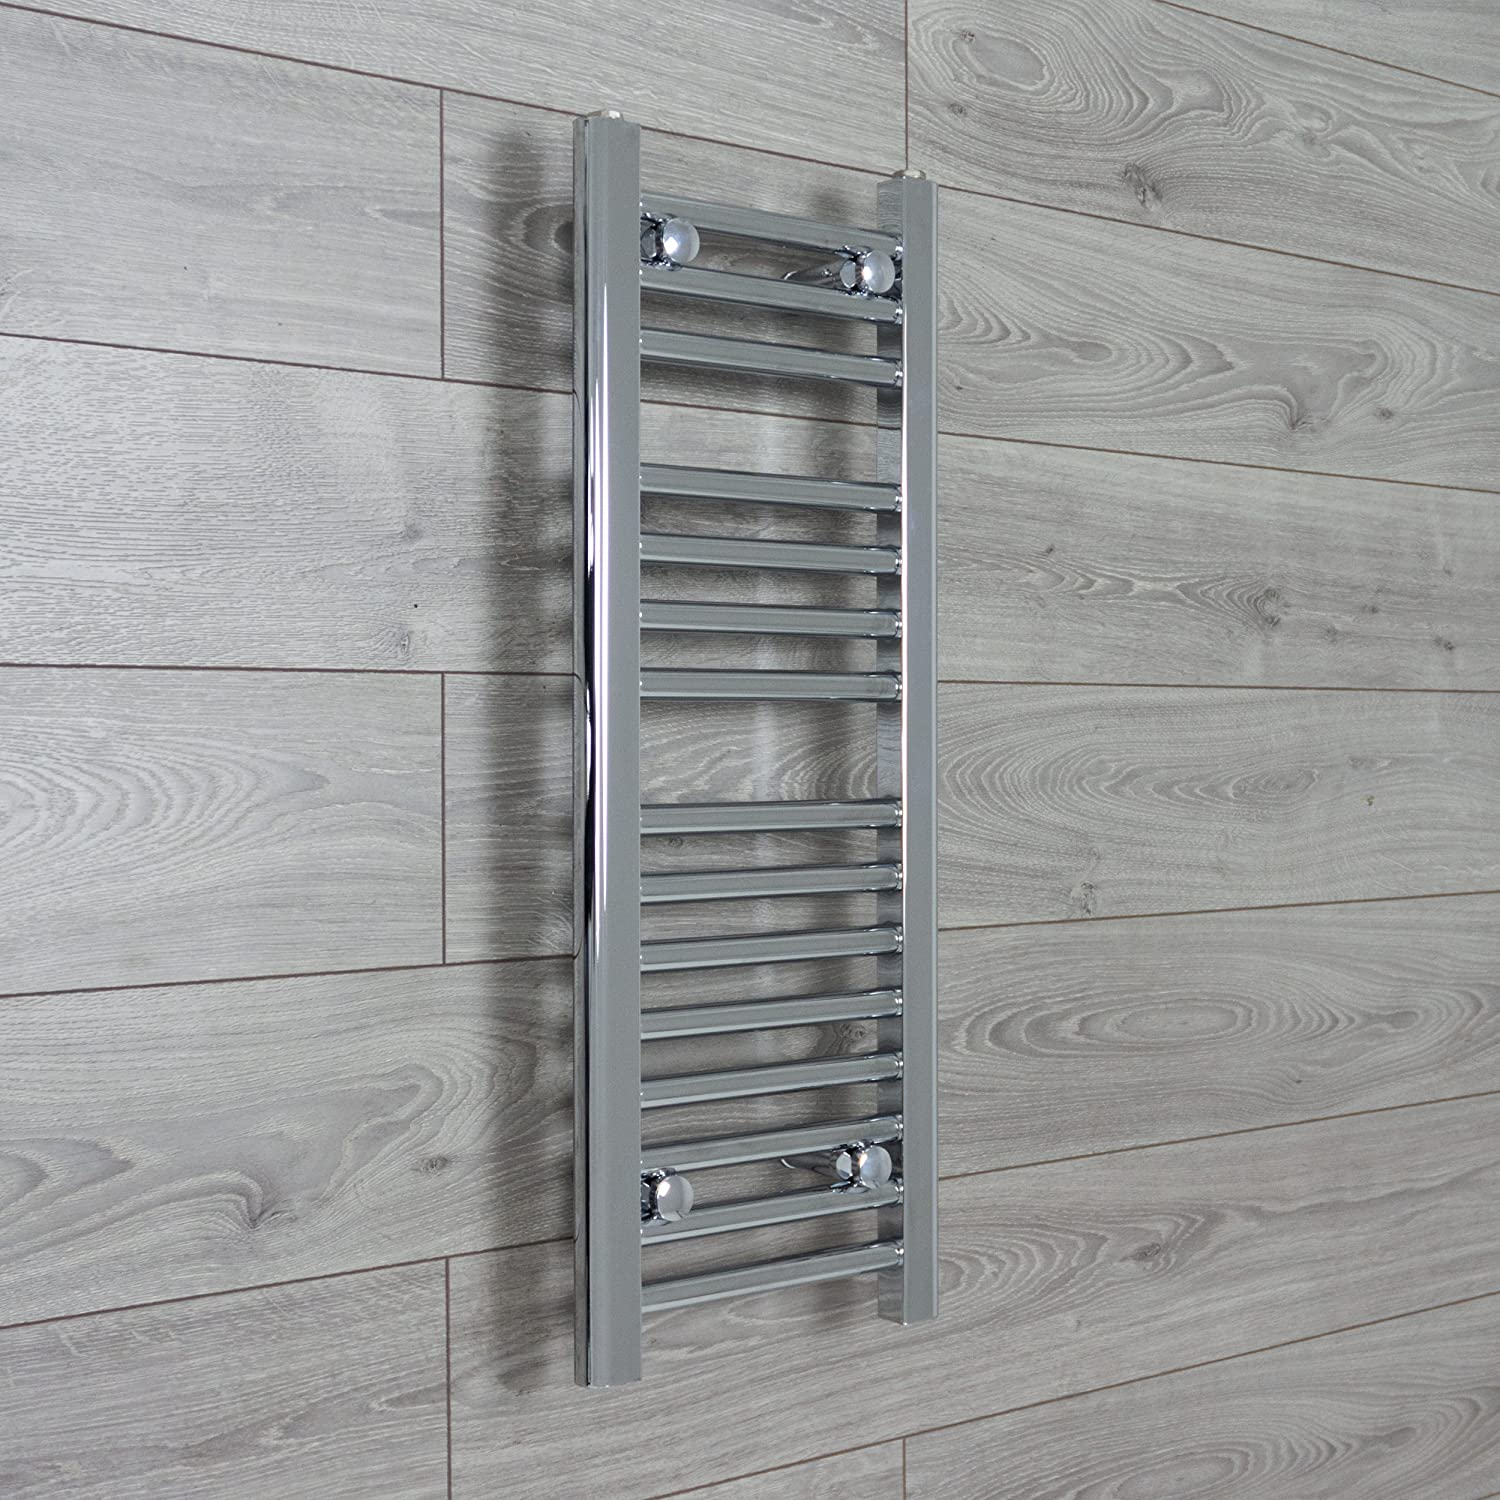 HEATED CHROME TOWEL RAIL RADIATOR WARMER 300mm wide x 800mm high Flat